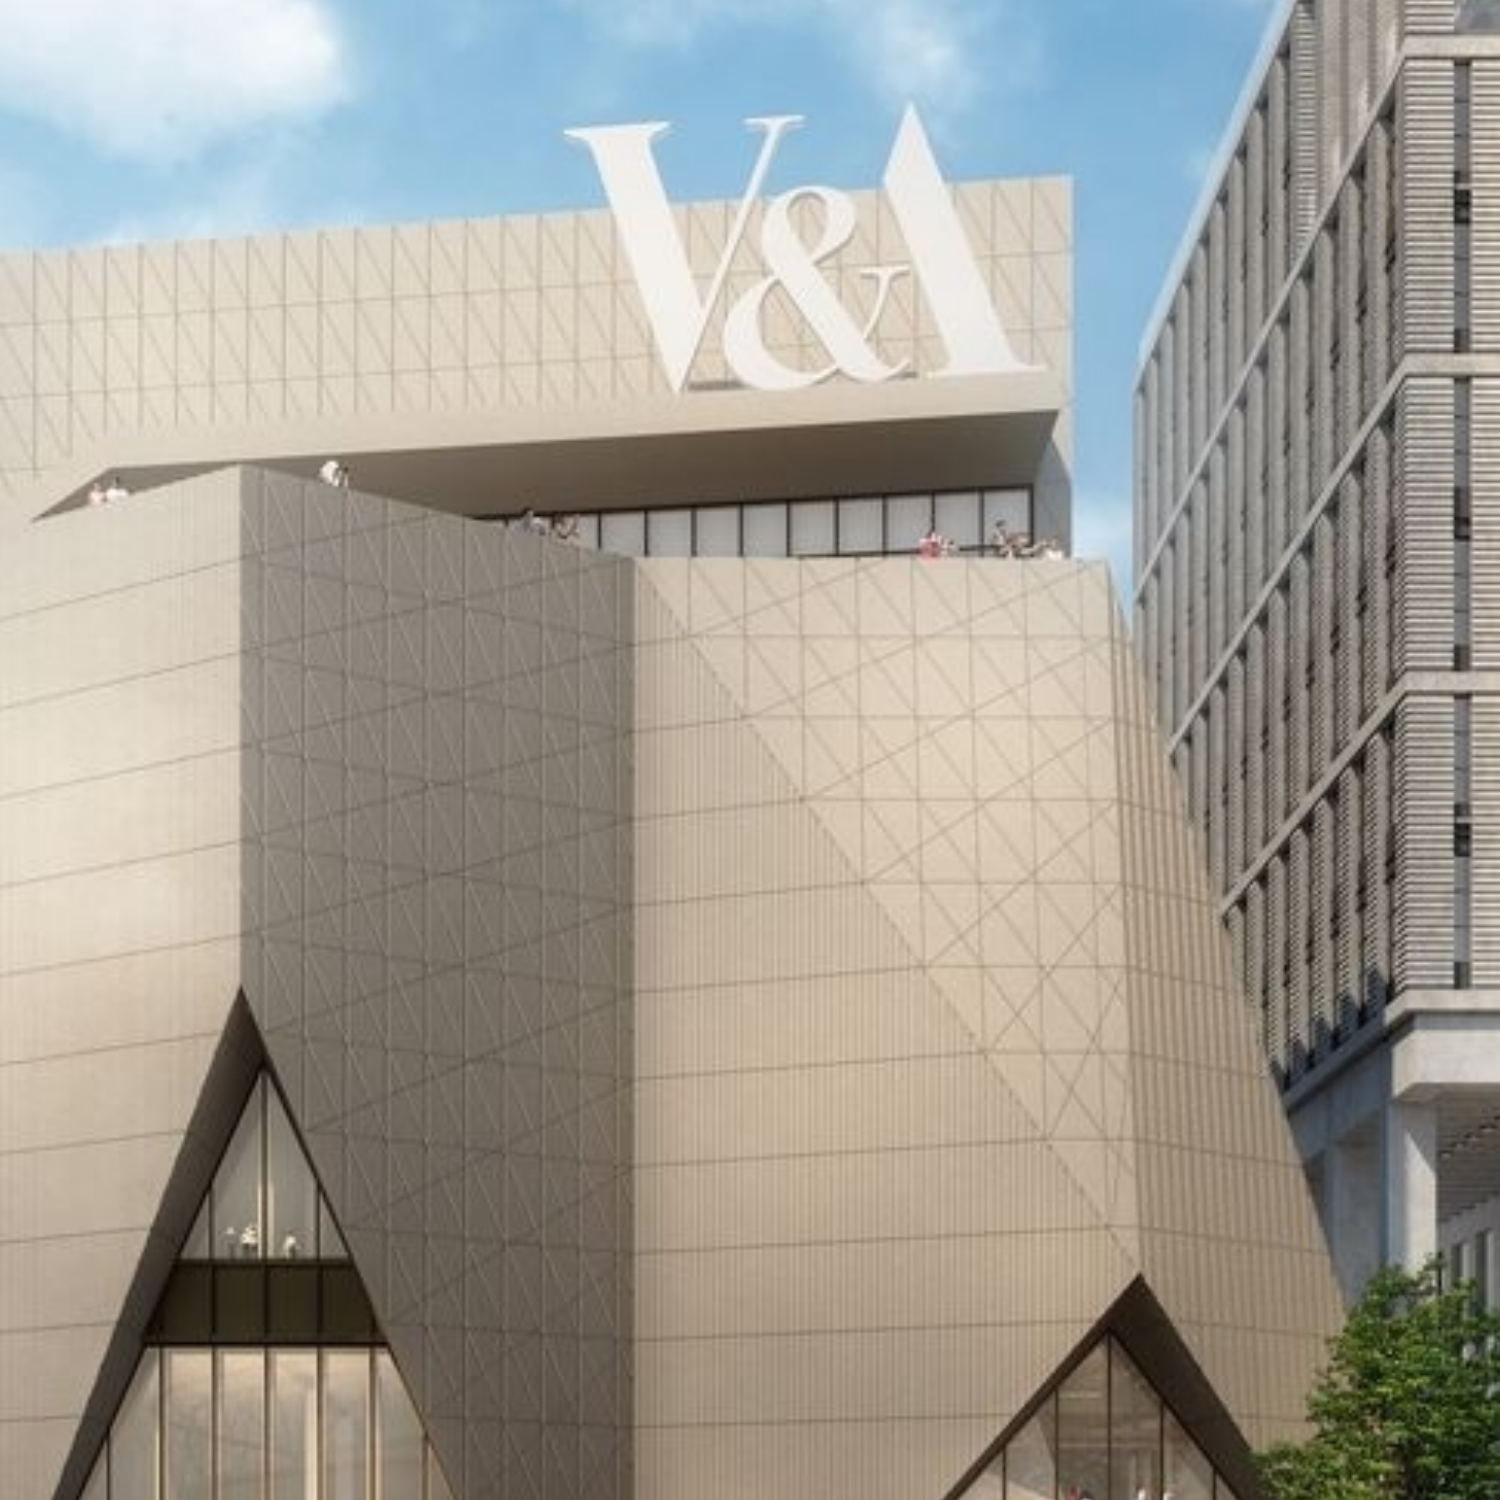 V&A to Open A Balenciaga-Inspired Museum in London's East End